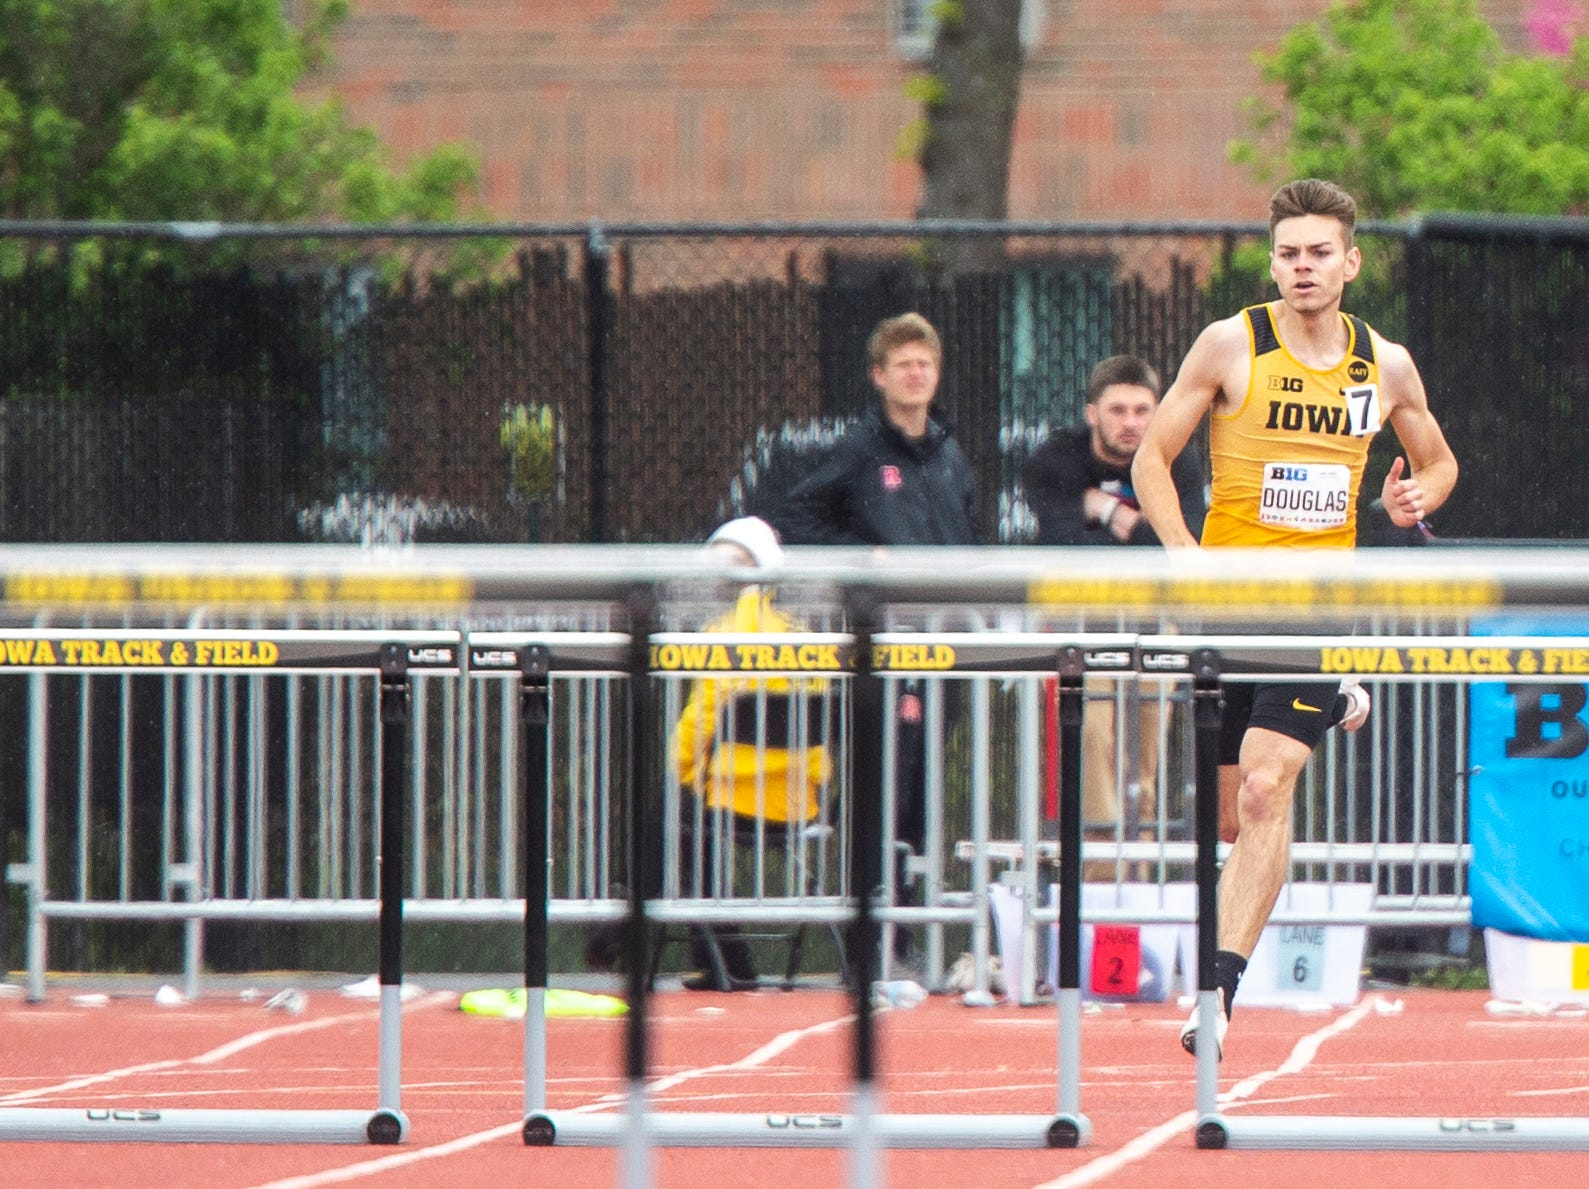 Iowa senior Chris Douglas approaches the final set of hurdles in the 400 meter hurdles during the final day of Big Ten track and field outdoor championships, Sunday, May 12, 2019, at Francis X. Cretzmeyer Track on the University of Iowa campus in Iowa City, Iowa. Douglas finished first, with a time of 50.32, a career best.